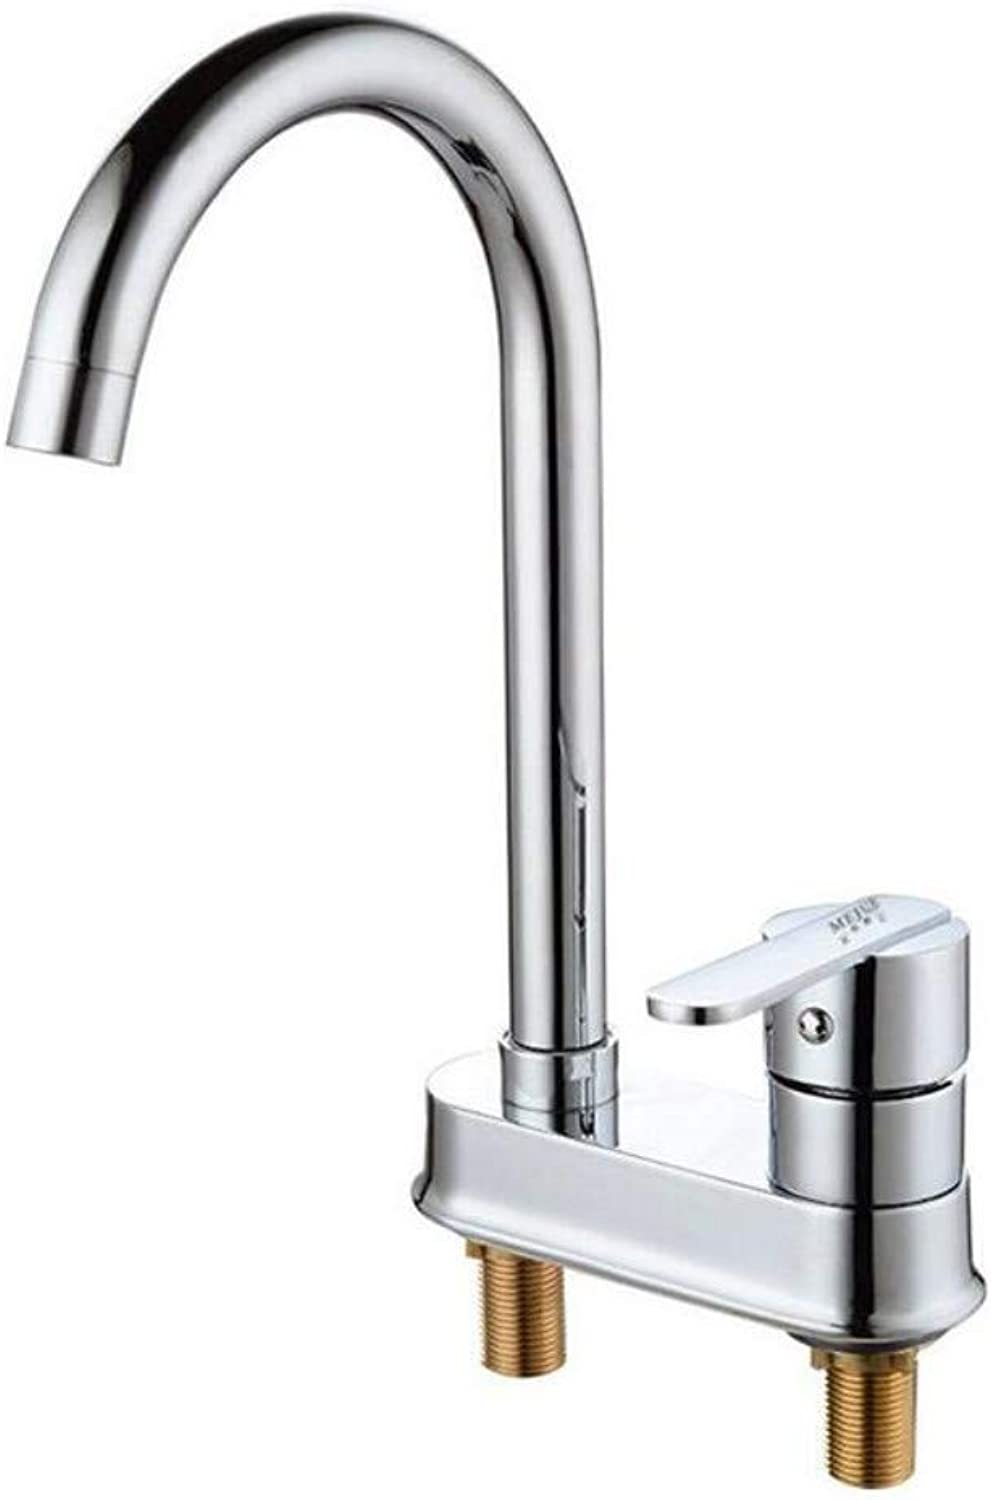 Modern Waterfall Copper Hot and Cold Kitchen Sink Taps Kitchen Faucet Single Handle Double Hole